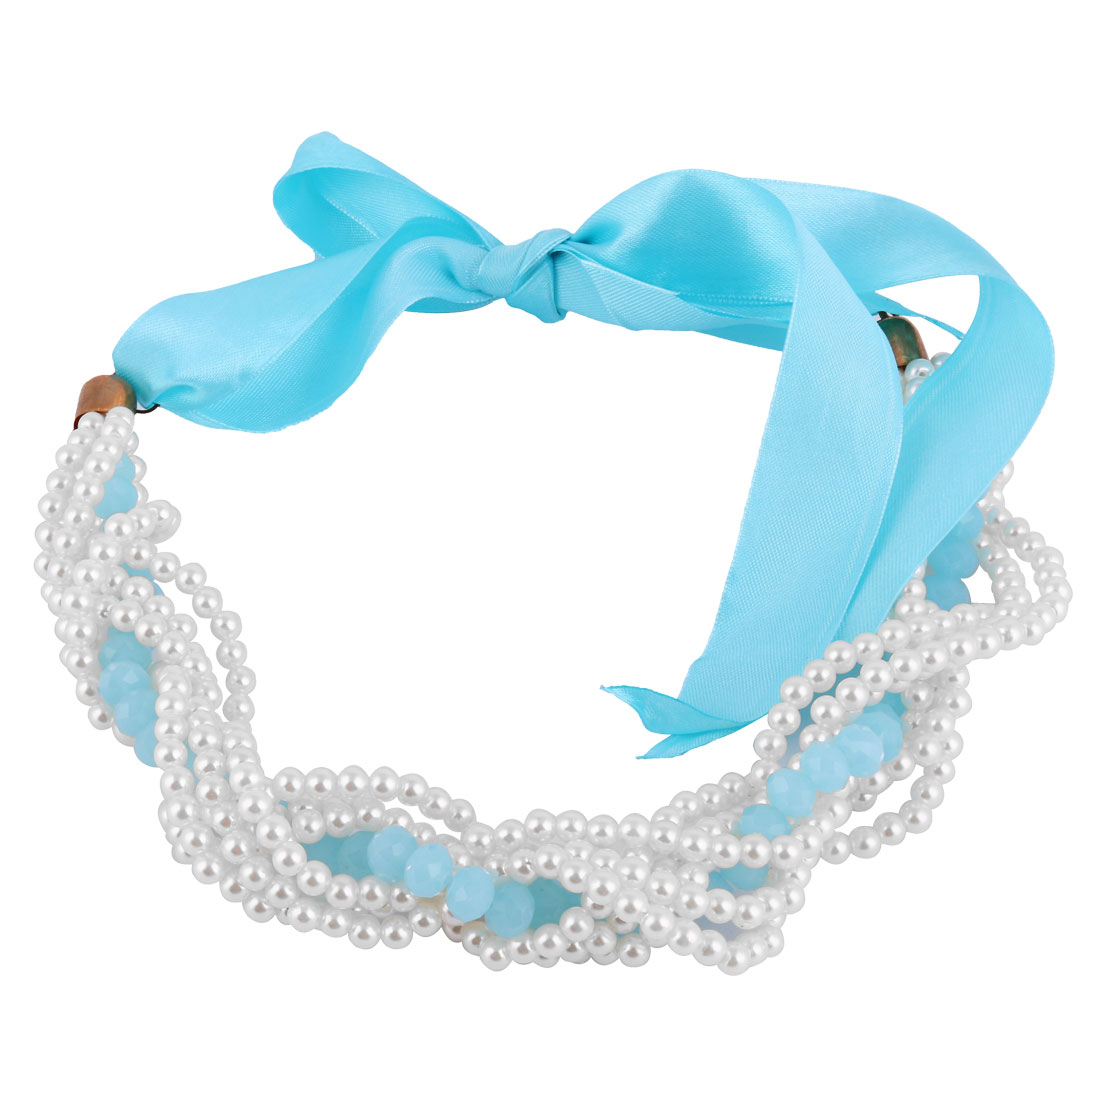 Plastic Beads Imitation Pearl Cluster Necklace Choker Neck Decor Blue